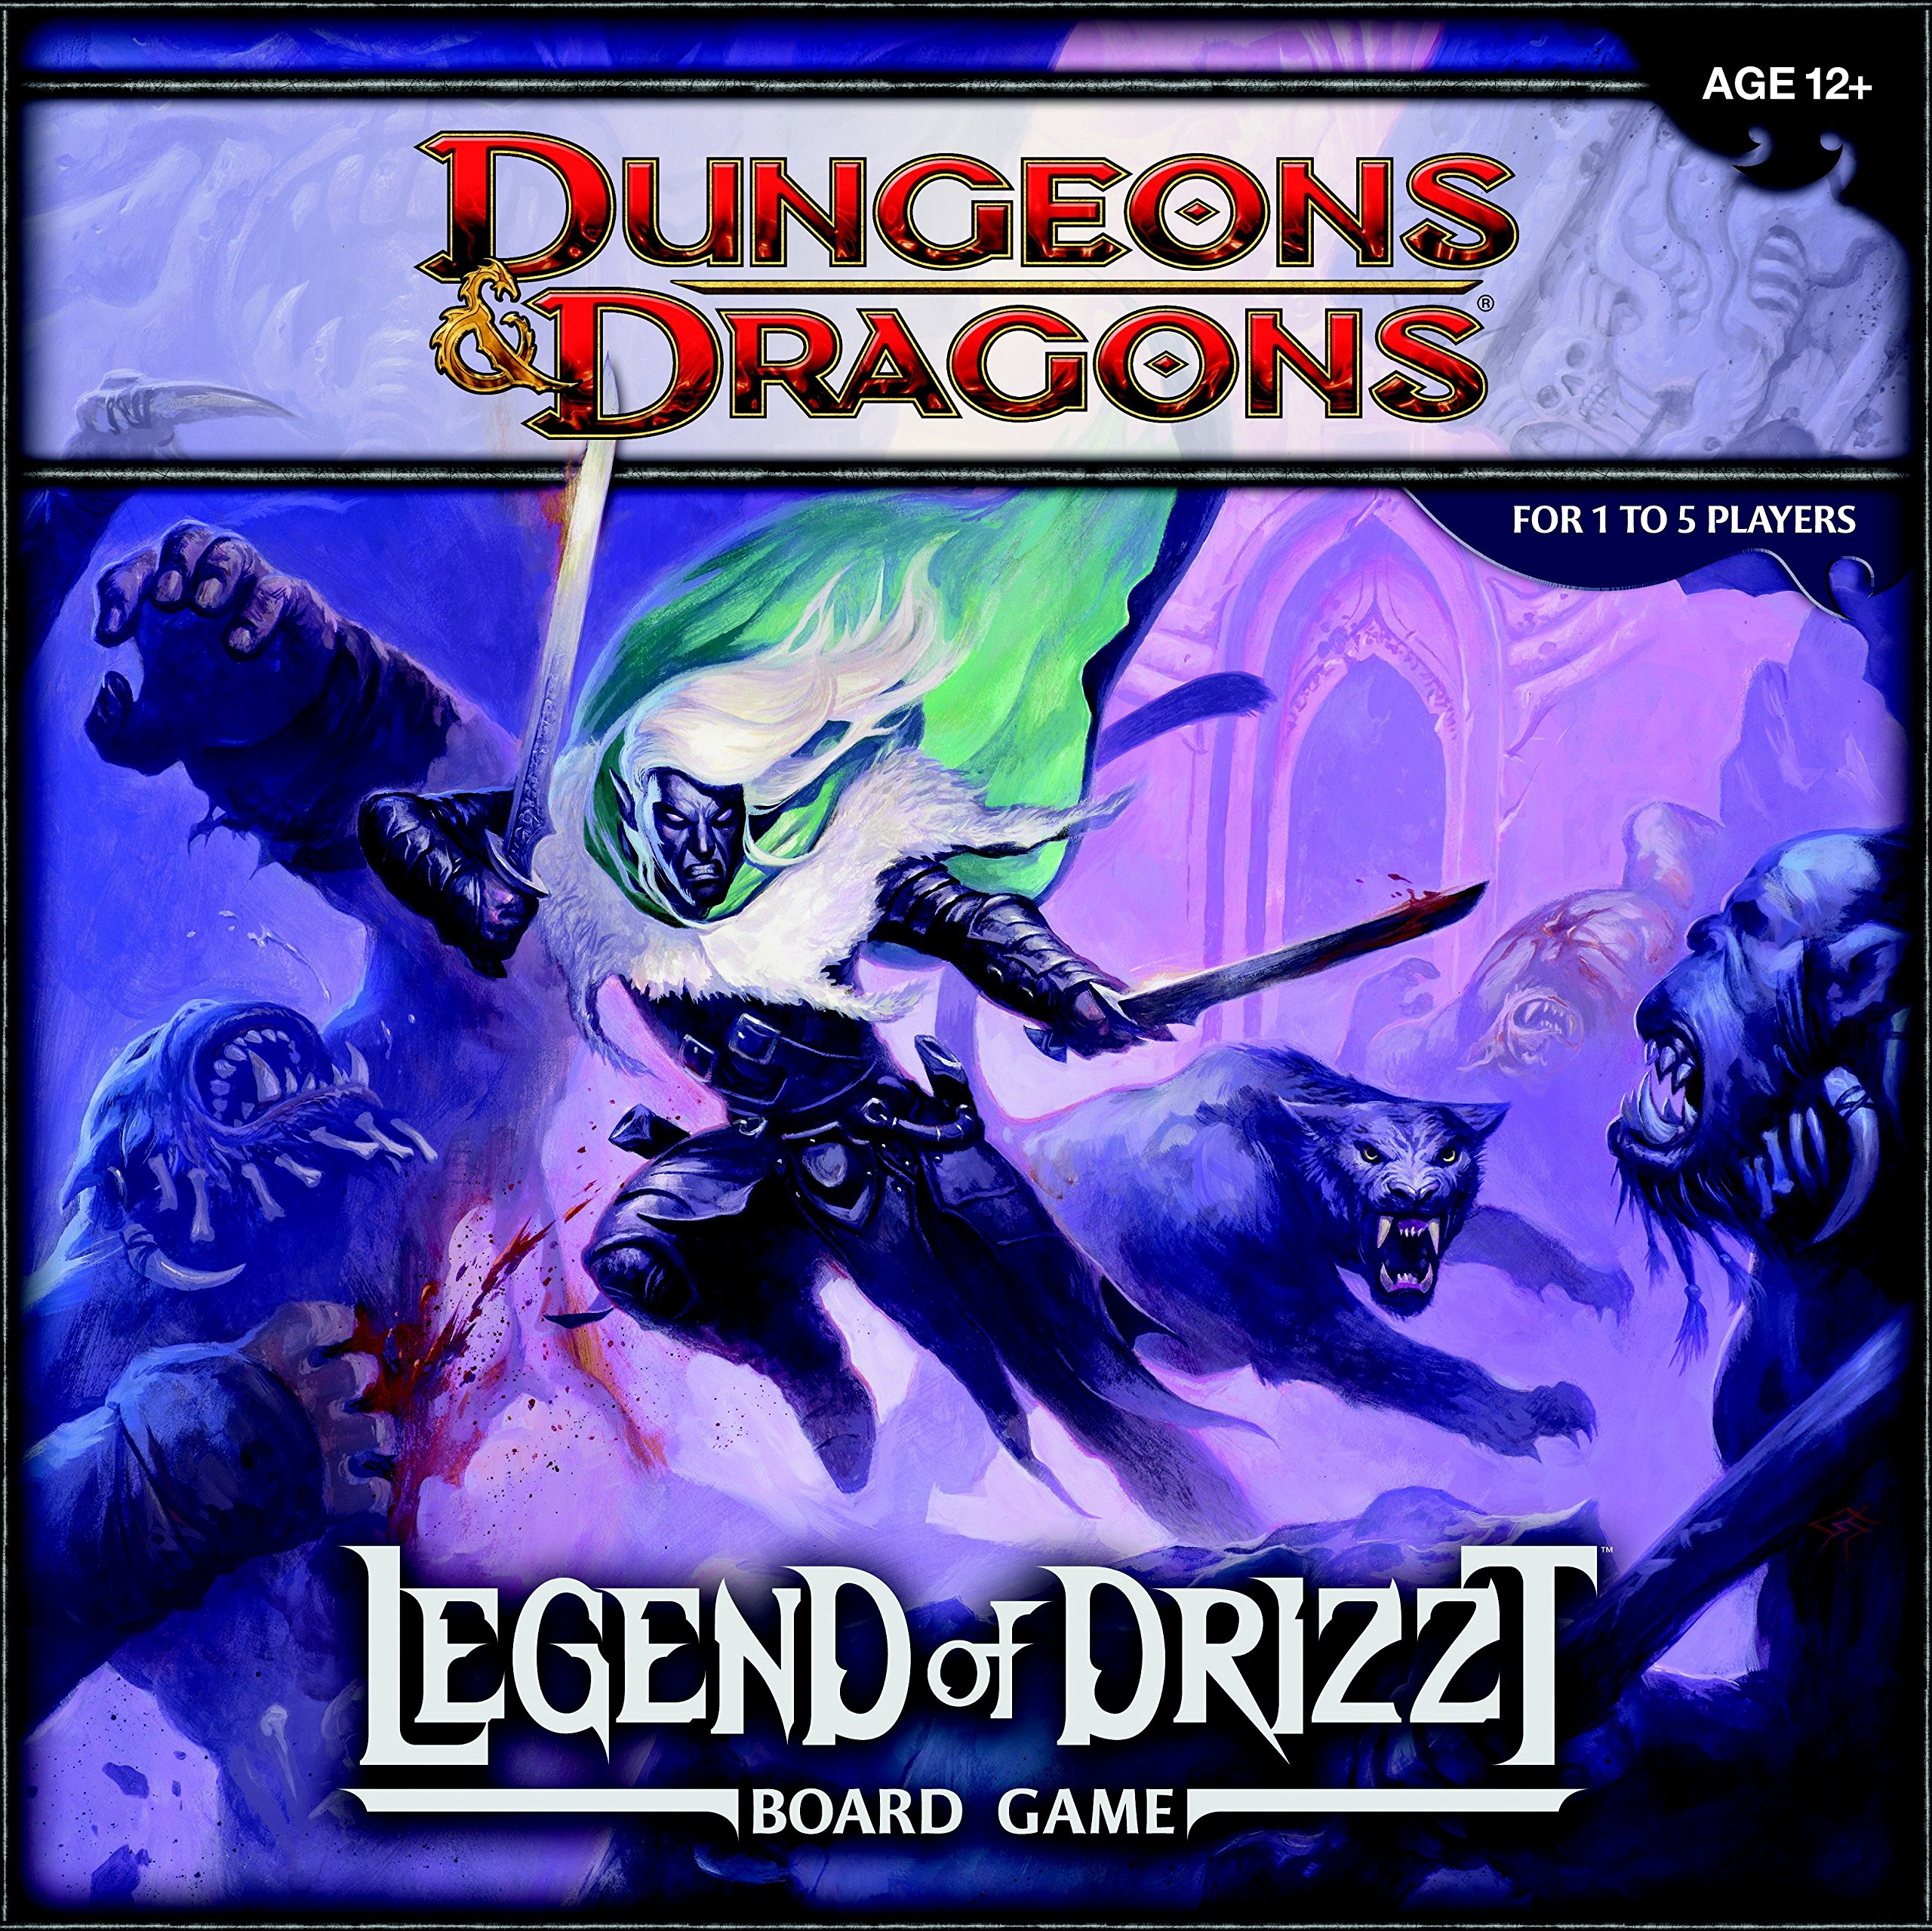 Dungeons & Dragons: The Legend of Drizzt Board Game